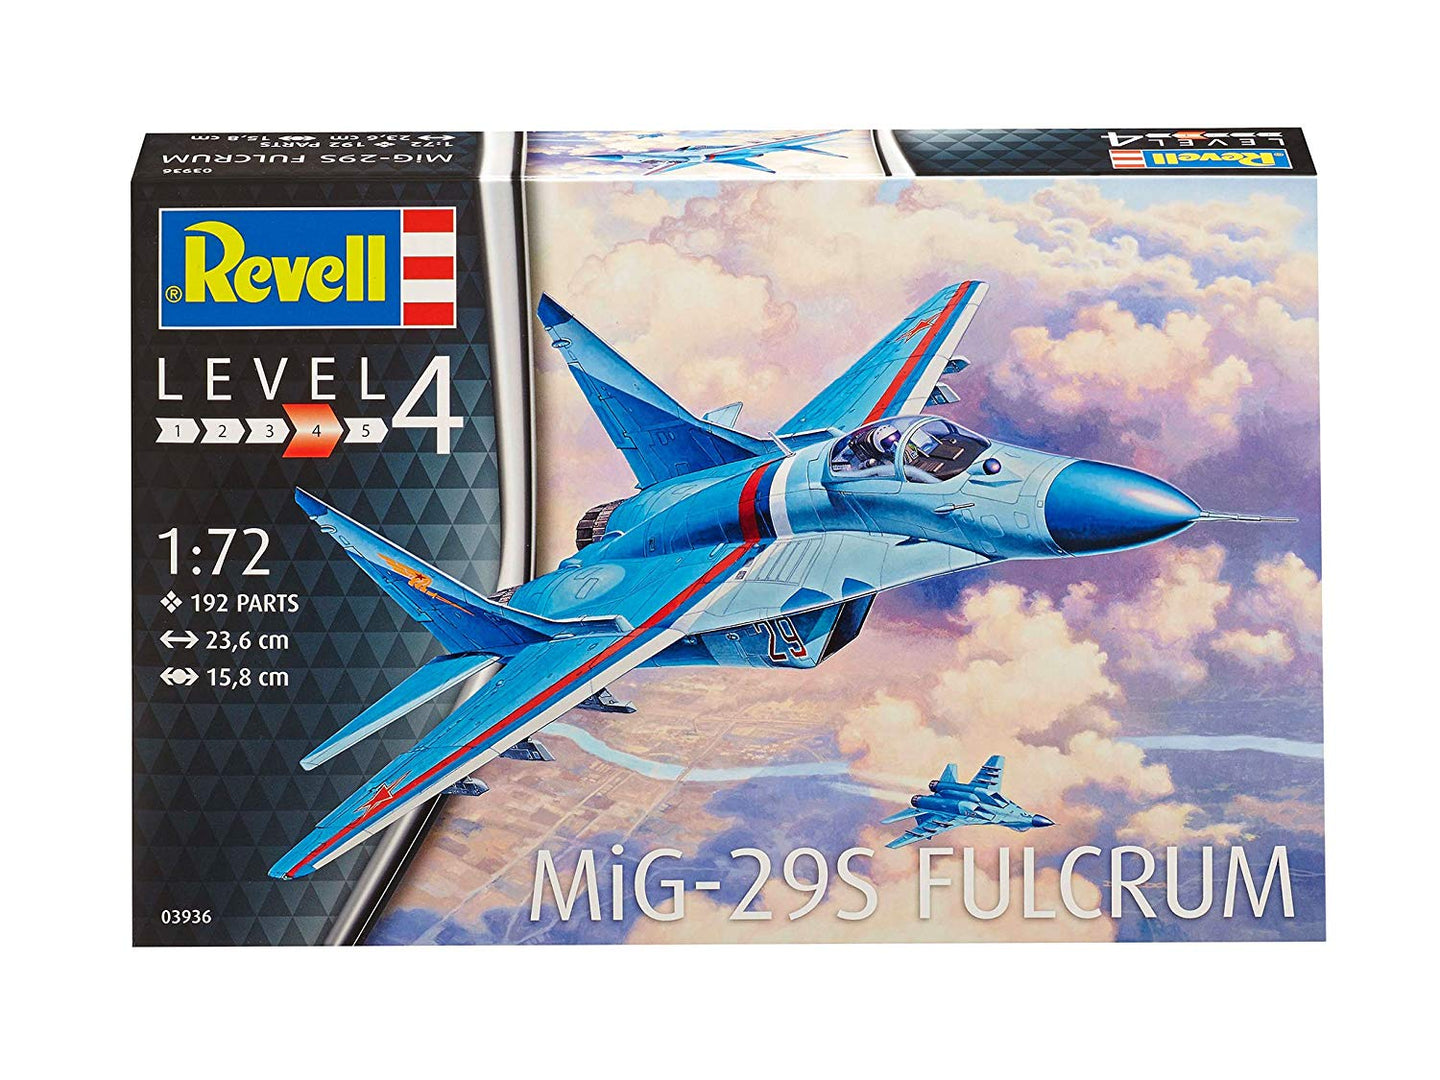 Revell Germany 1/72 mig-29s fulcrum 03936